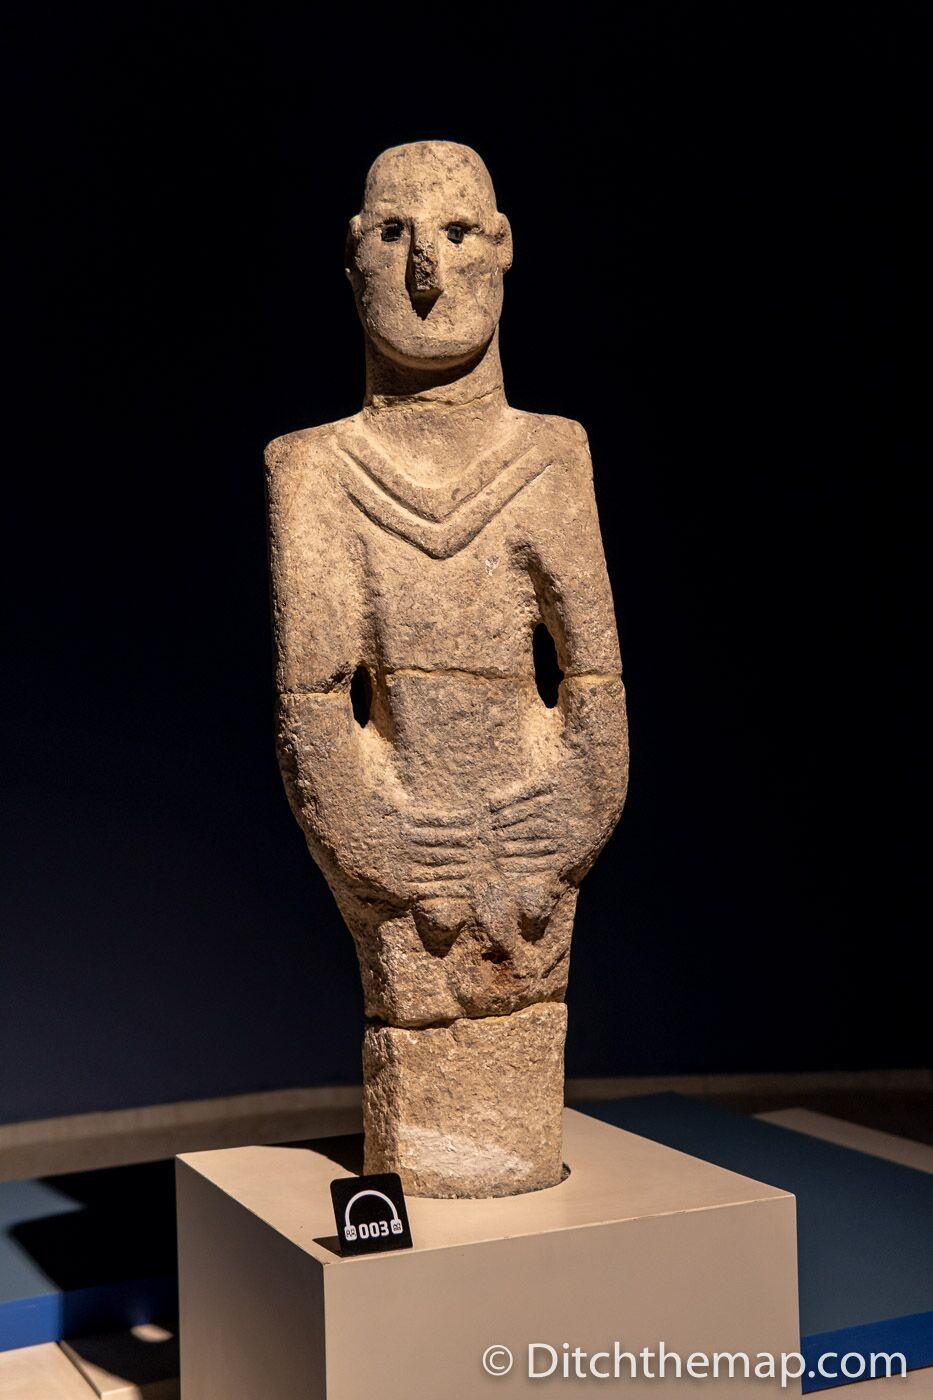 The Urfa Man - an 11,000 year old life-sized human sculpture at Sanliurfa Archeology Museum